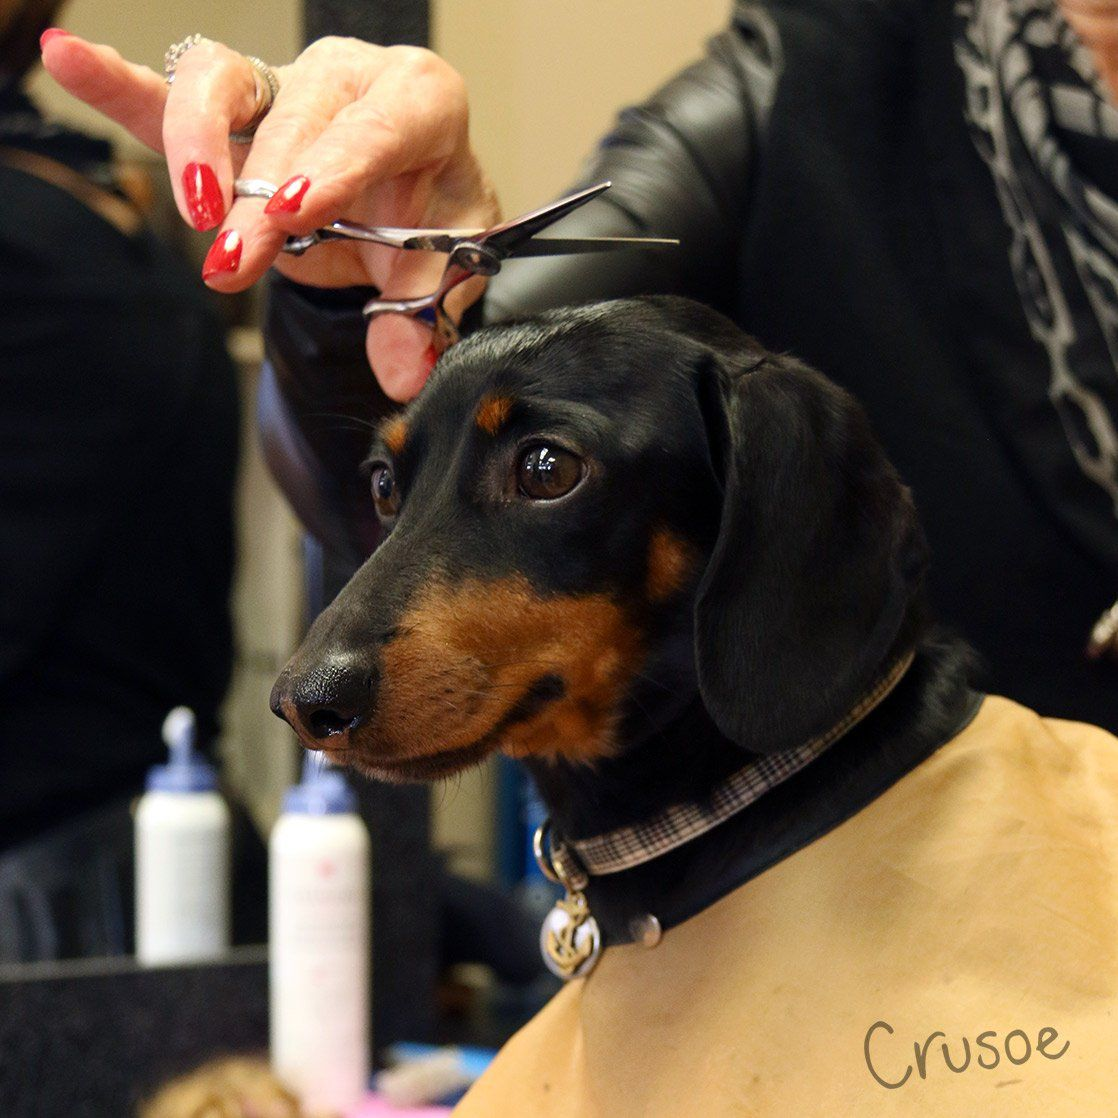 Mydoglikes Mydoglikes Twitter Crusoe The Celebrity